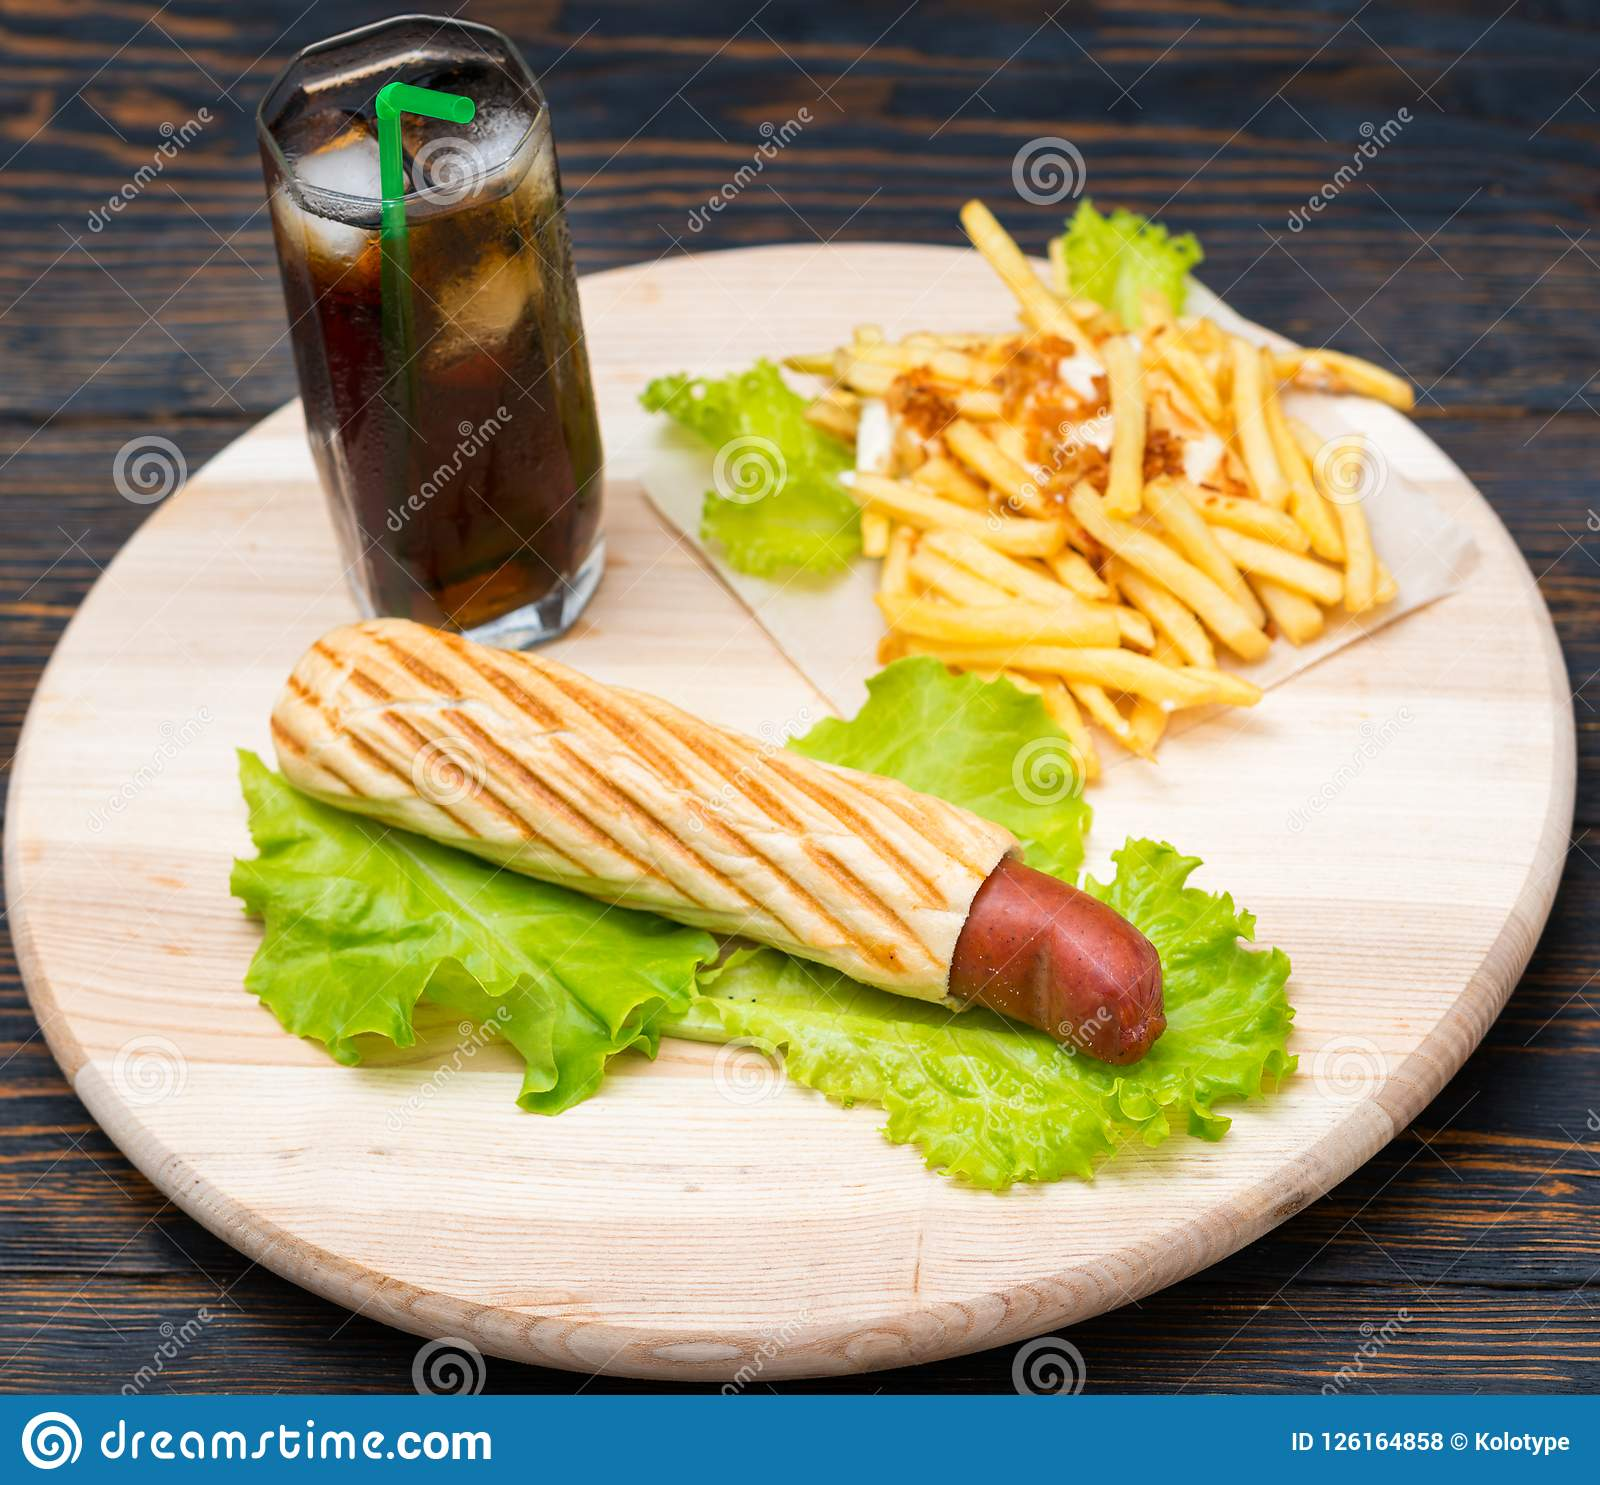 Overhead View Of Hot Dogs And Fries Next To Soda Stock Photo Image